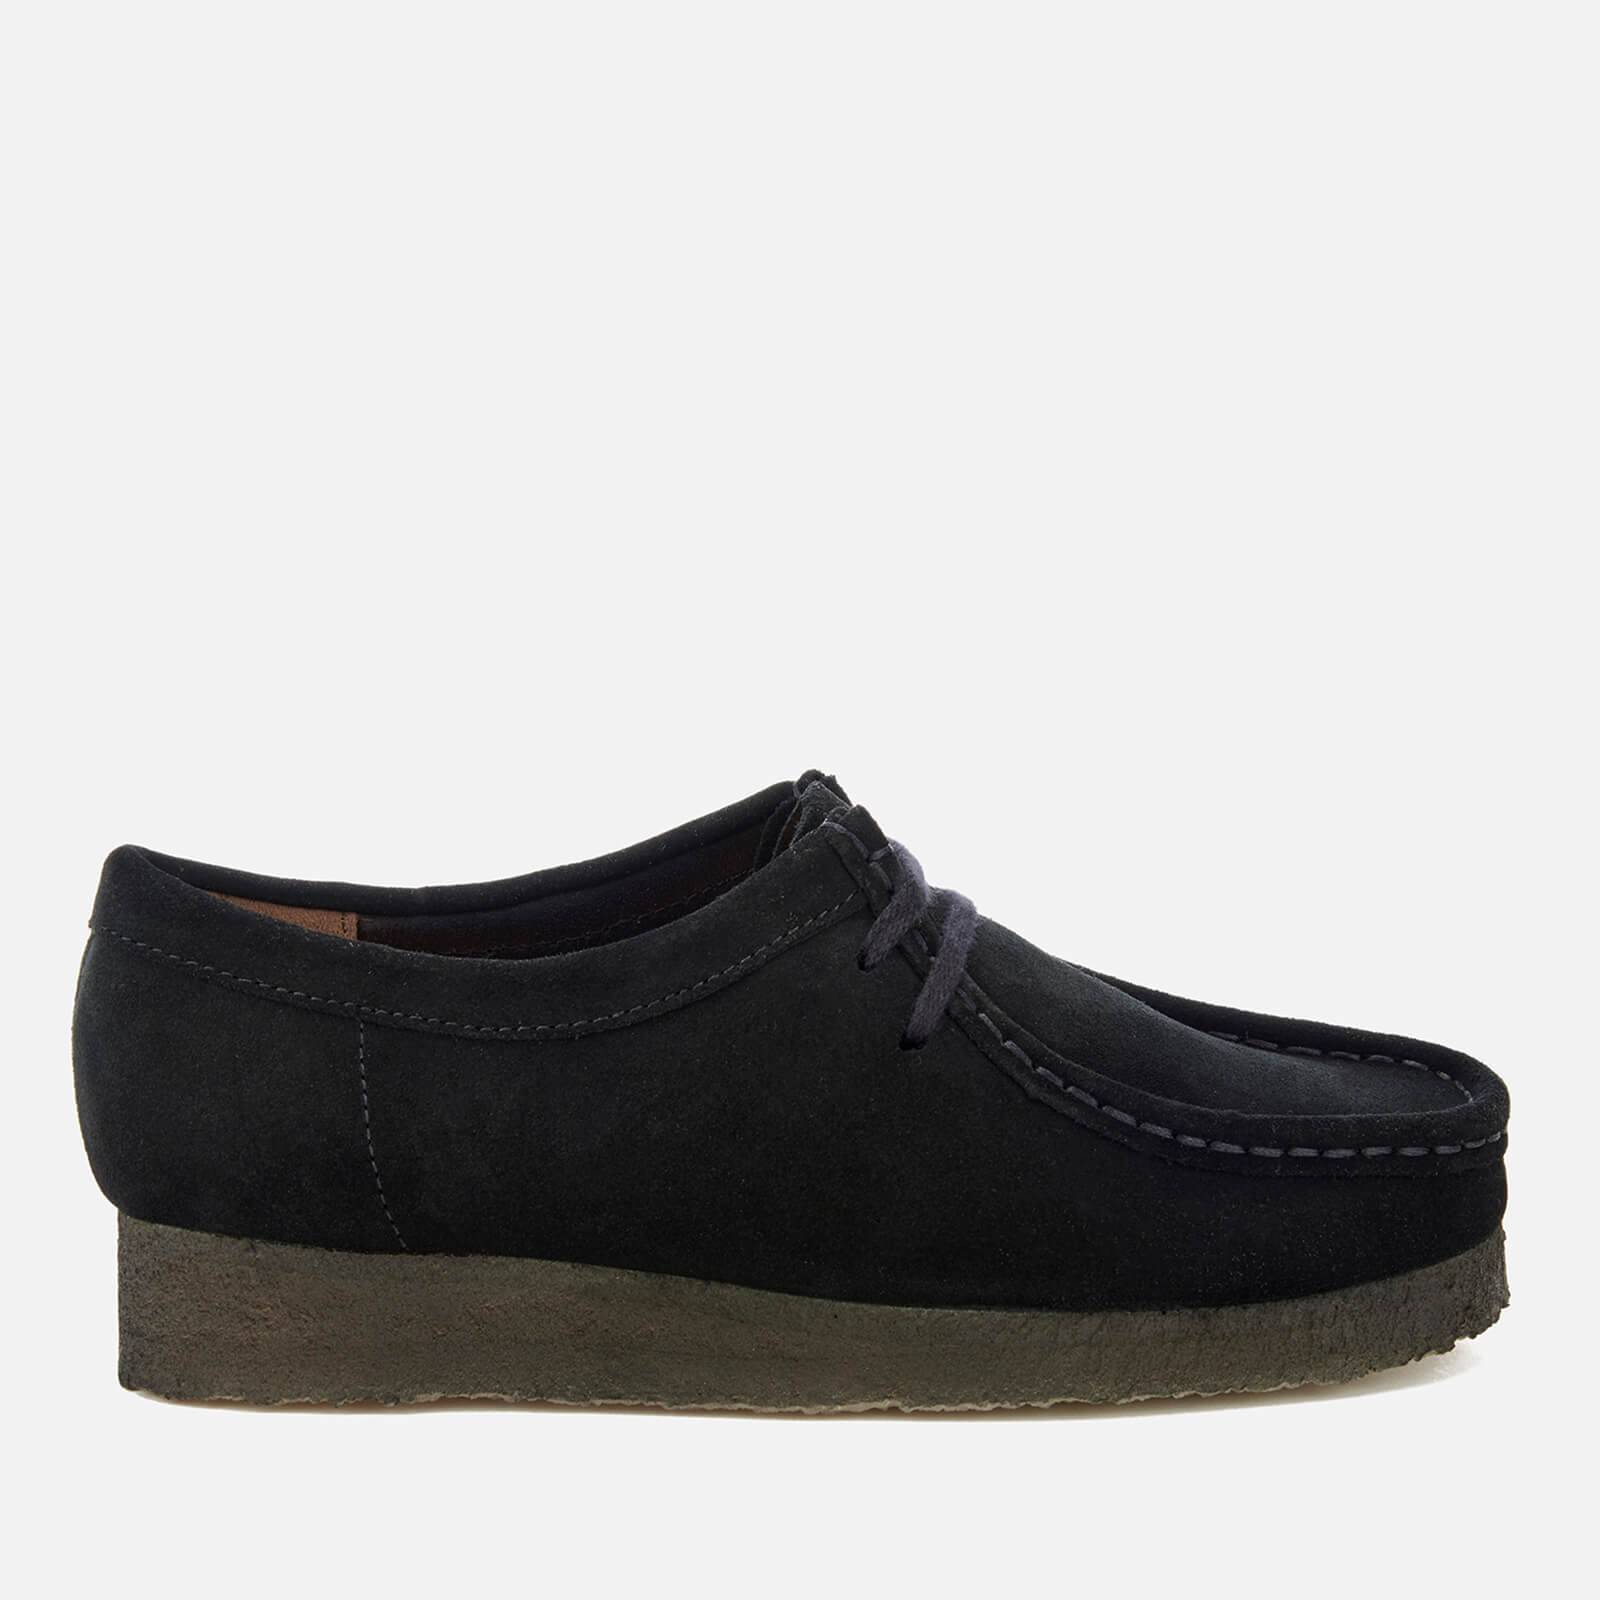 Clarks Originals Women's Wallabee Shoes - Black Suede - UK 7 - Black